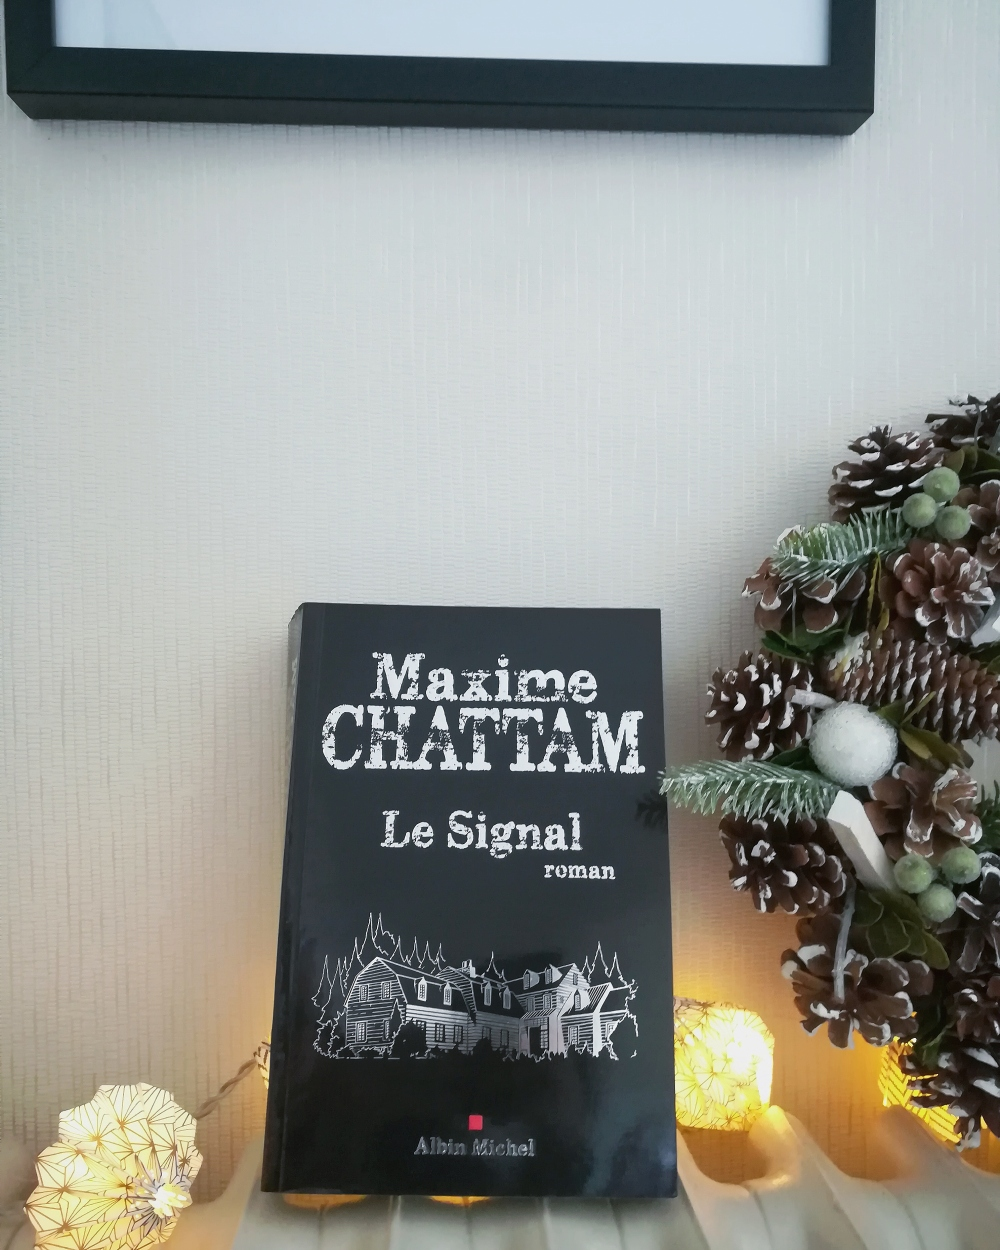 tomabooks-le-signal-maxime-chattam